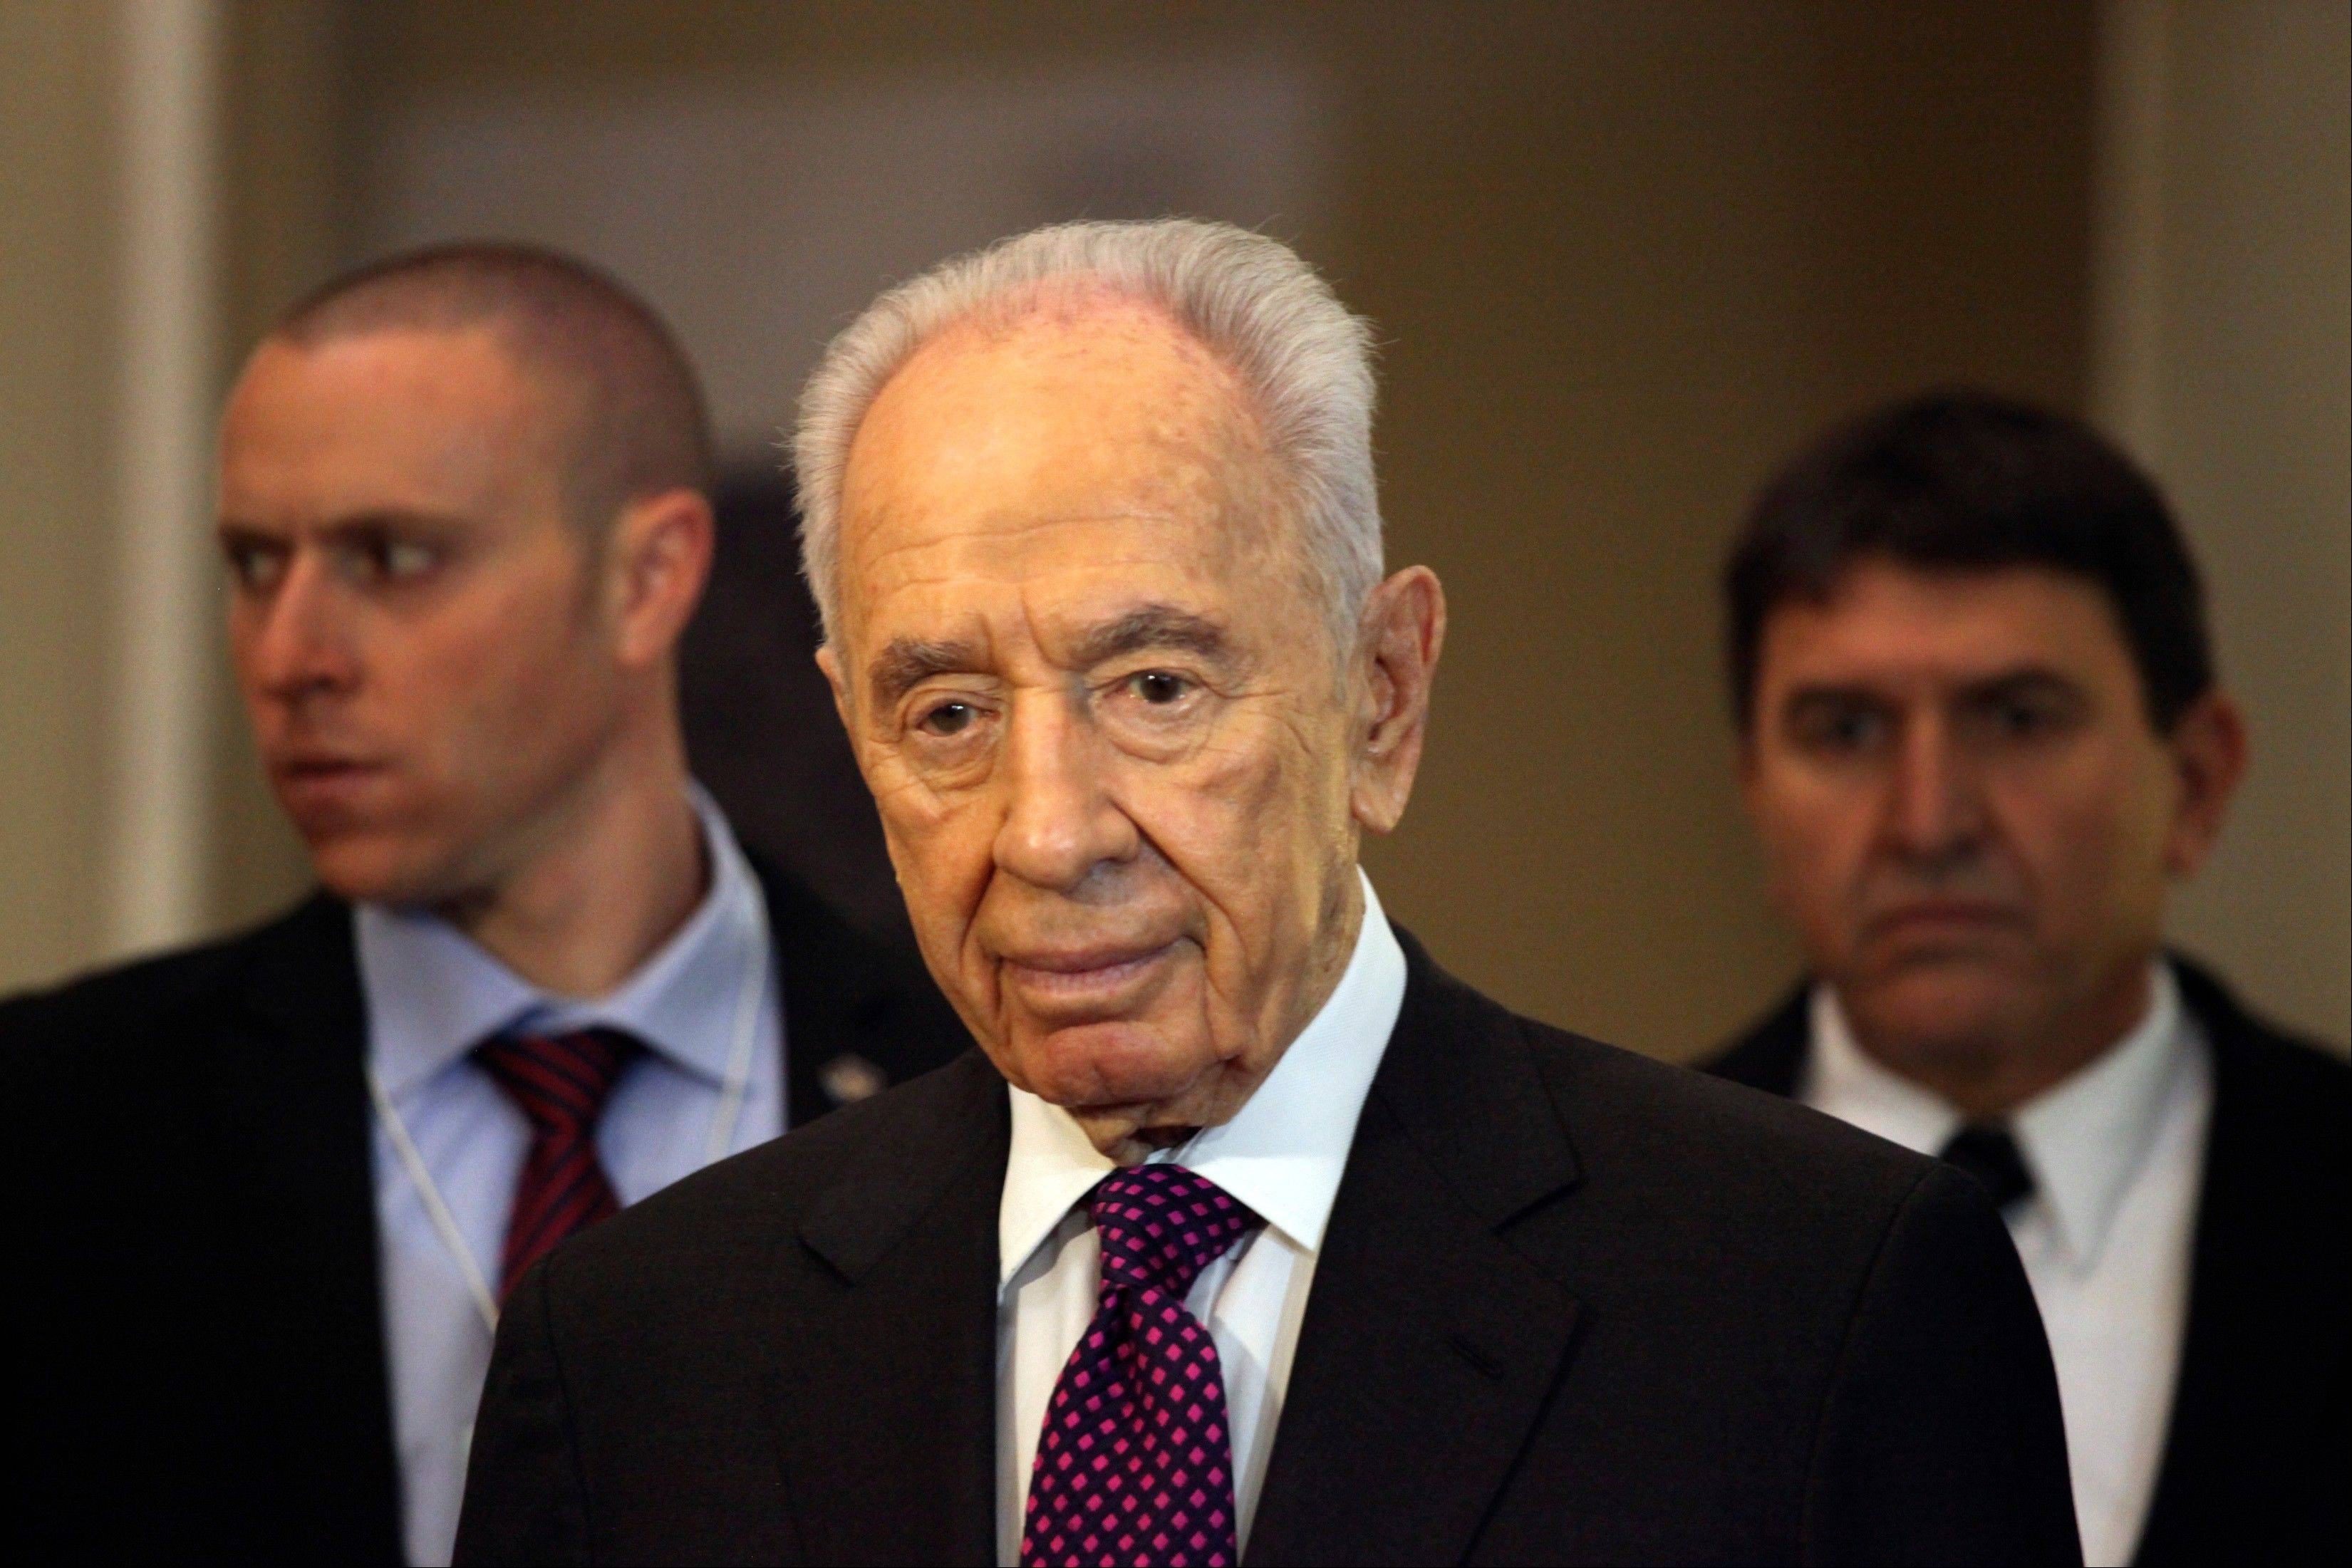 Associated Press Israeli President, Shimon Peres, arrives to give a brief statement at the World Economic Forum, in Southern Shuneh, 34 miles southeast of Amman, Jordan, Sunday, May 26, 2013. Peres says it is possible for Israelis and Palestinians to overcome differences and skepticism over peacemaking and that it is time to restart serious negotiations and conclude a peace treaty that has long dogged the two warring sides.